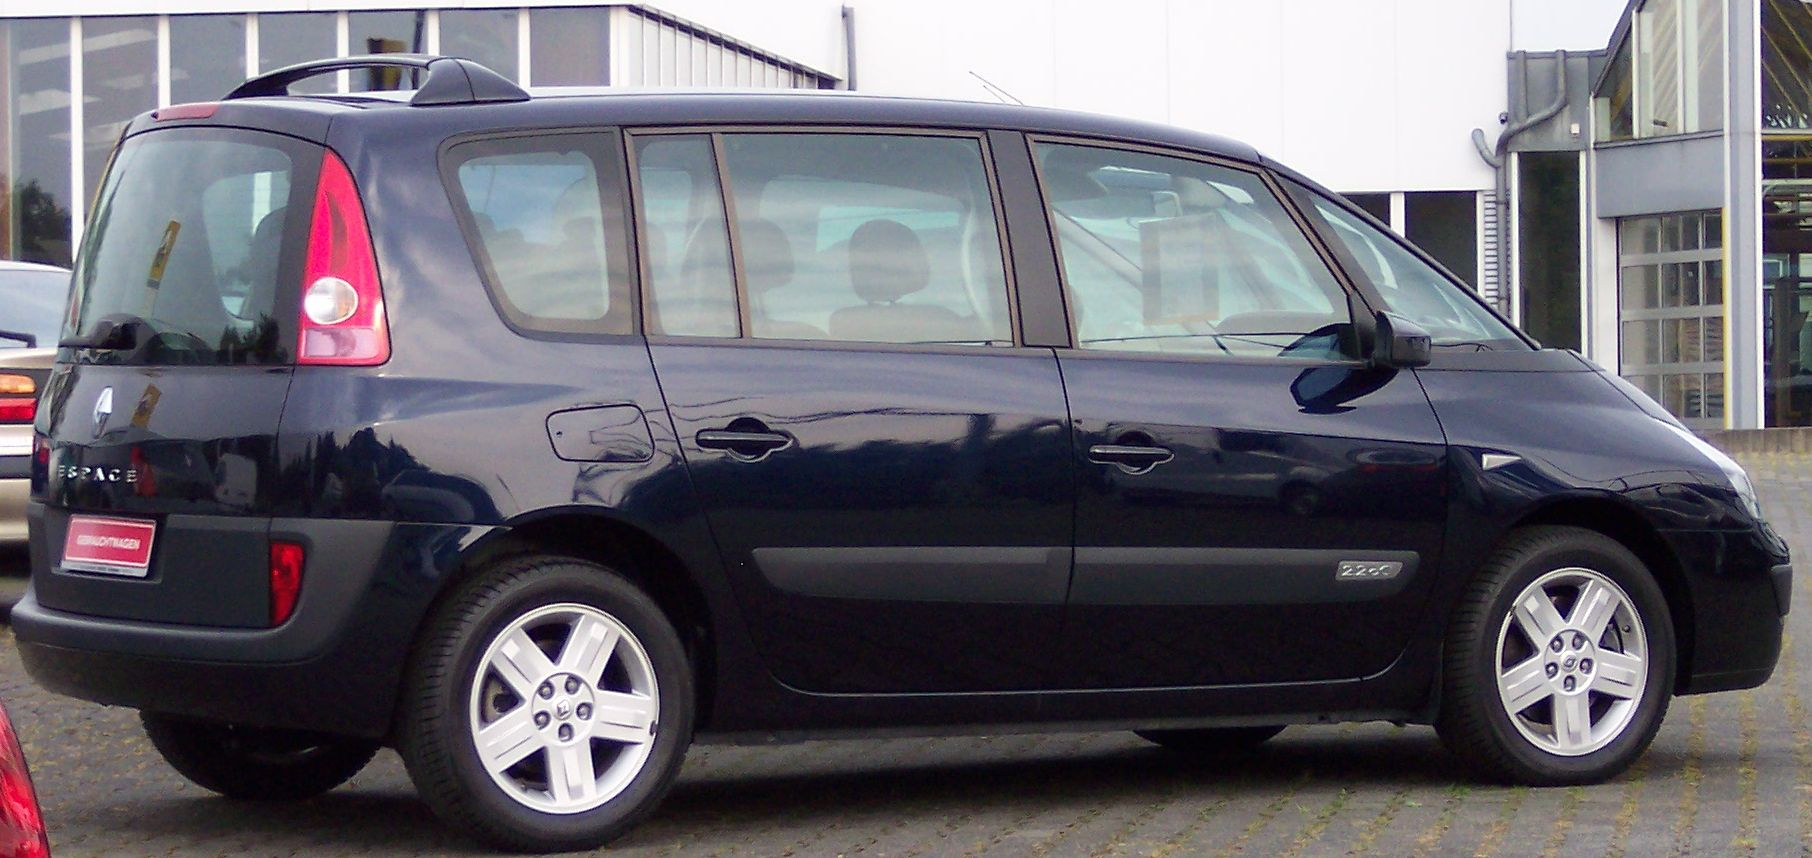 File:Renault Espace black r.jpg - Wikipedia, the free encyclopedia